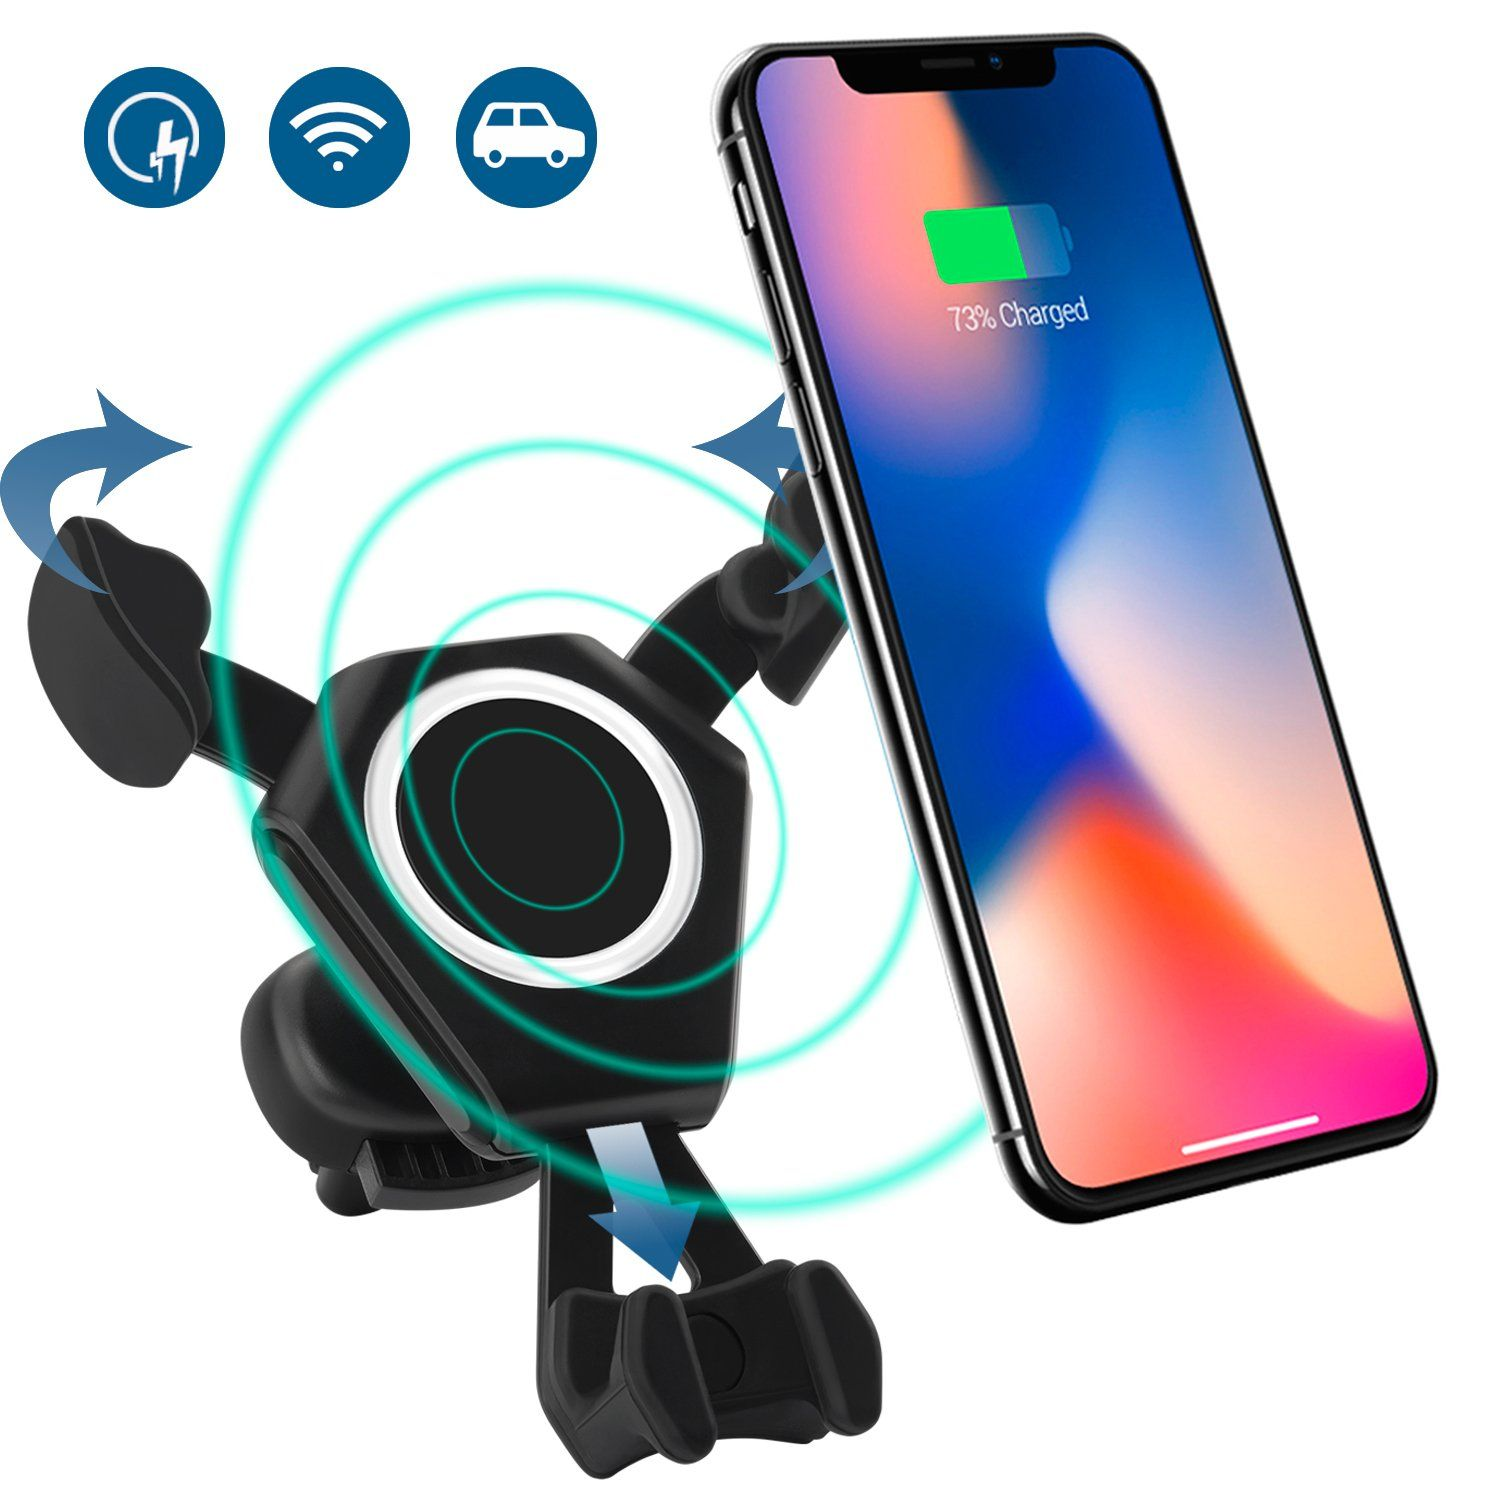 Universal Bike Phone Mount Bike Tie Pro 2 Series Black Upgraded Compatibility with Face ID and Large Smartphones Bicycle Stem Handlebar Cell Phone Holder for iPhone 11 Pro Max XS XR 8 7 6 Plus